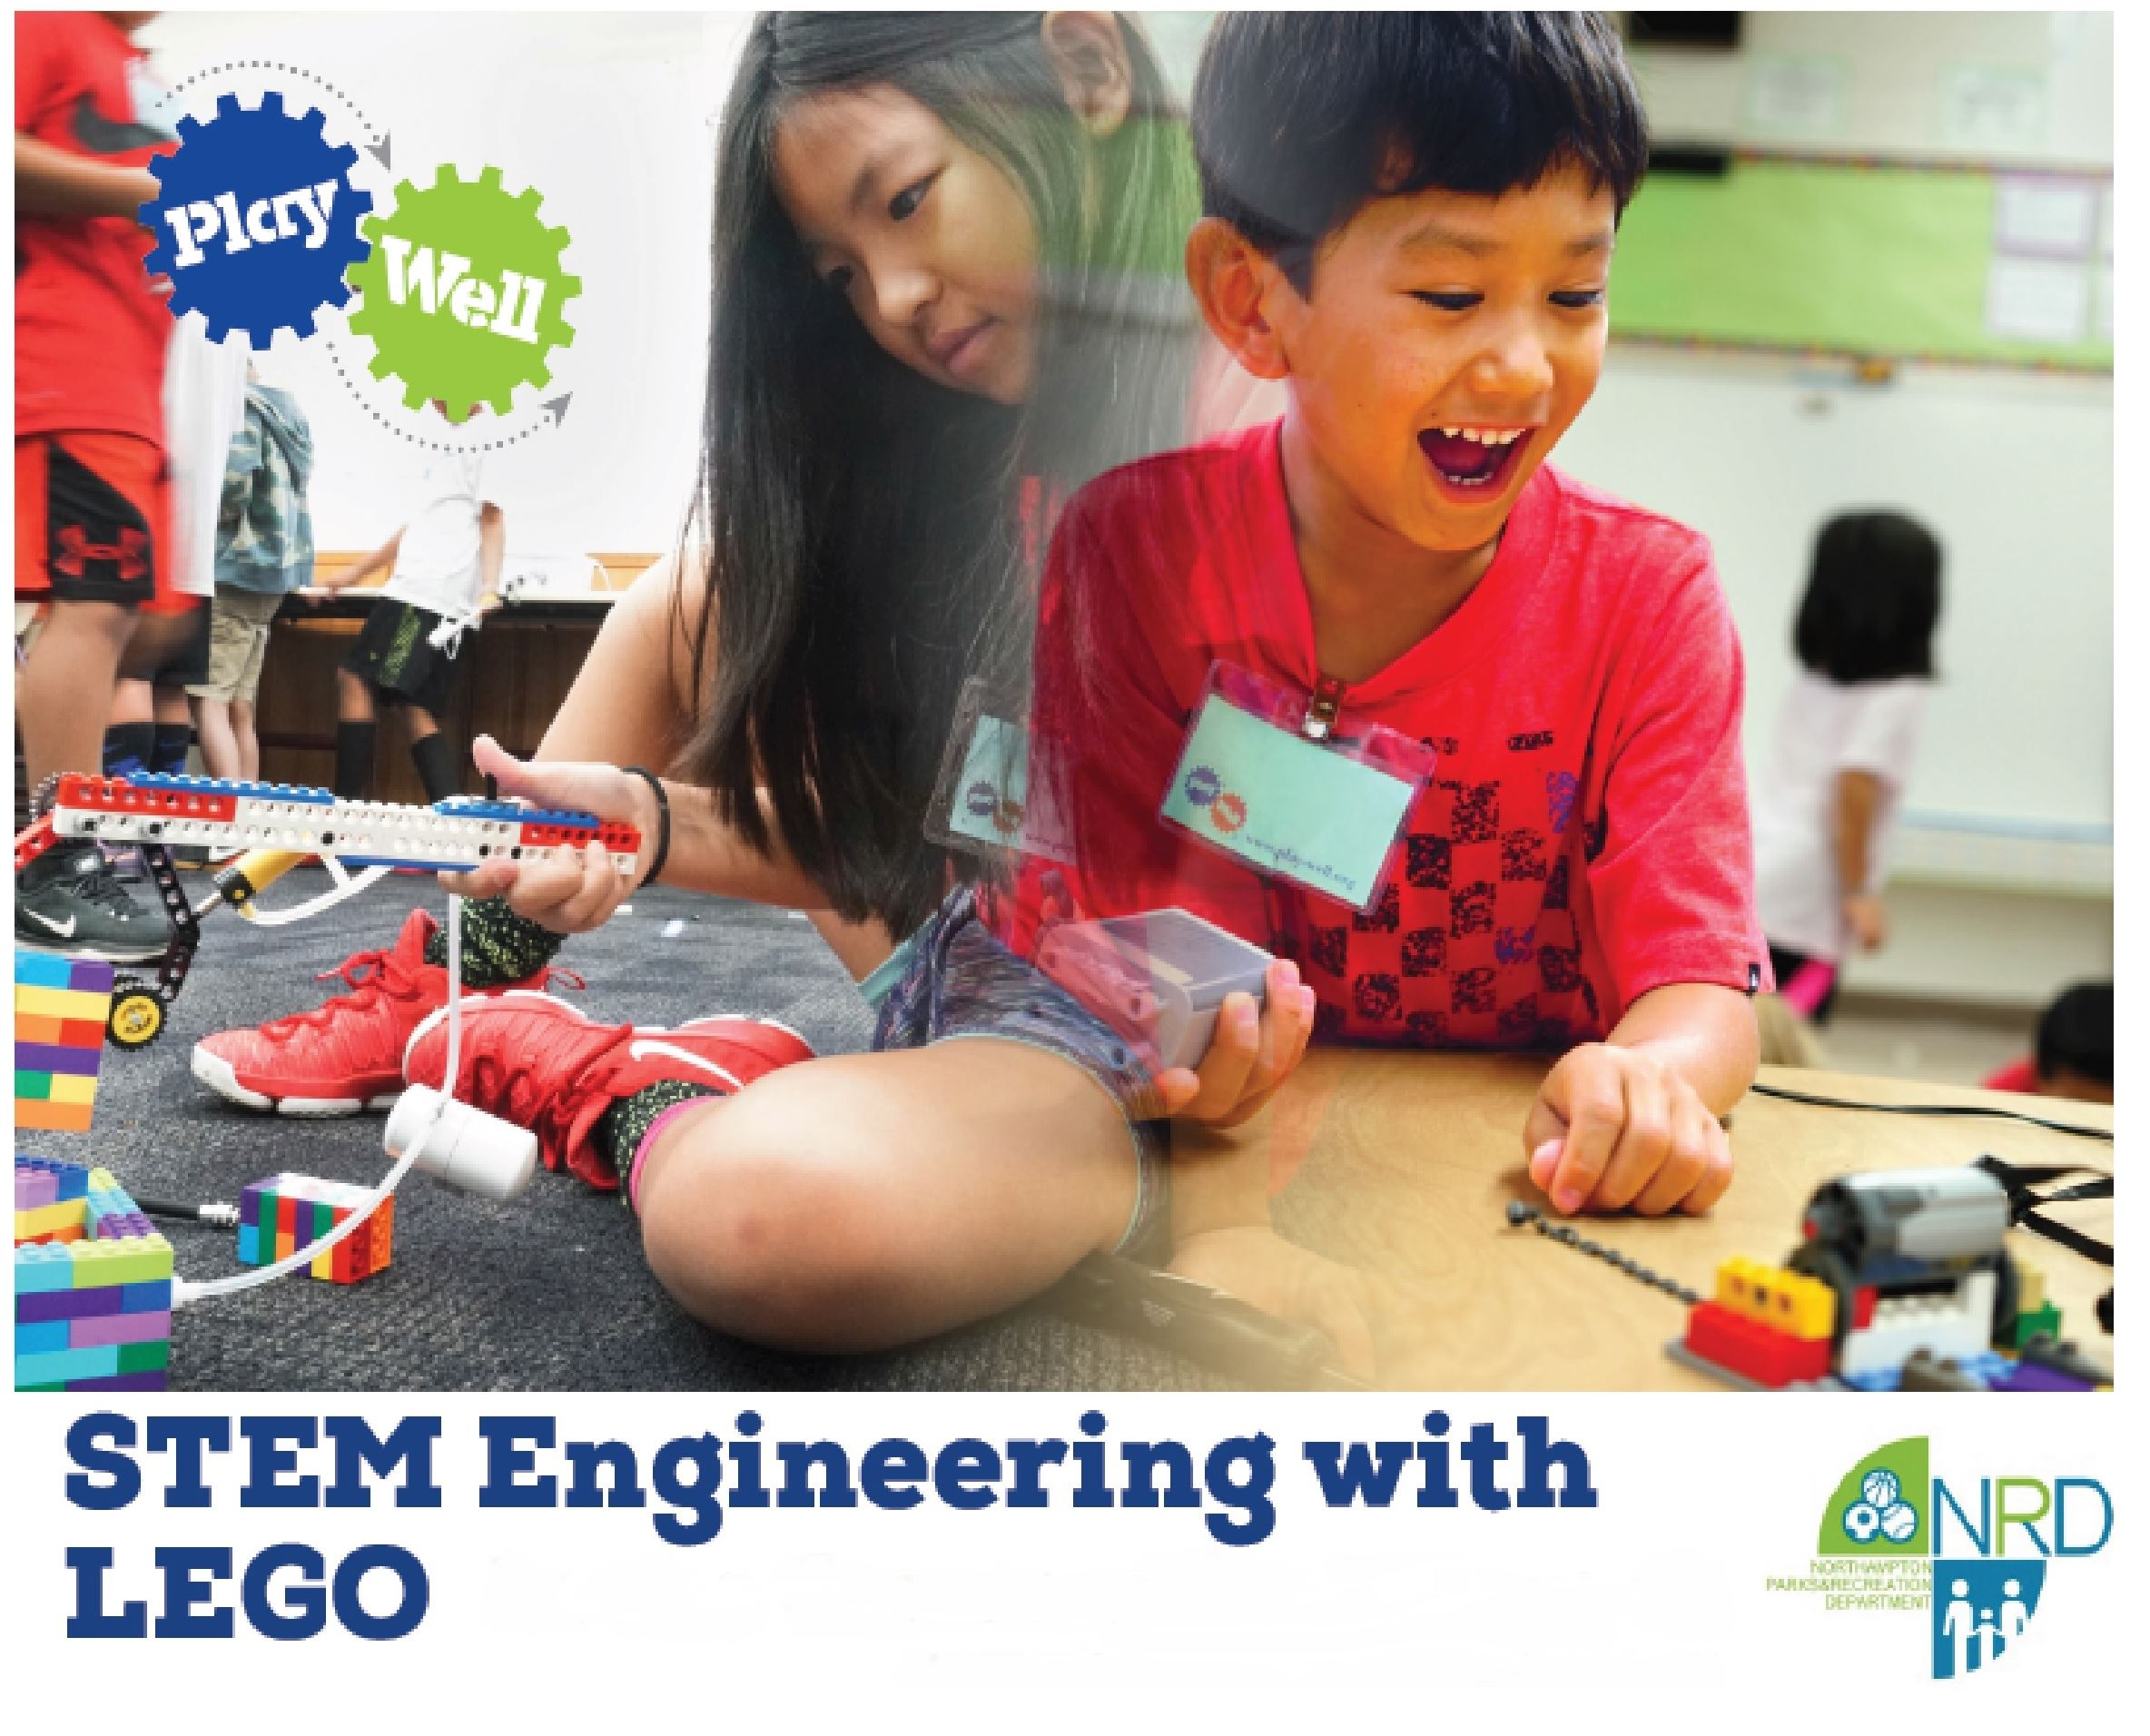 STEM Engineering with Lego image